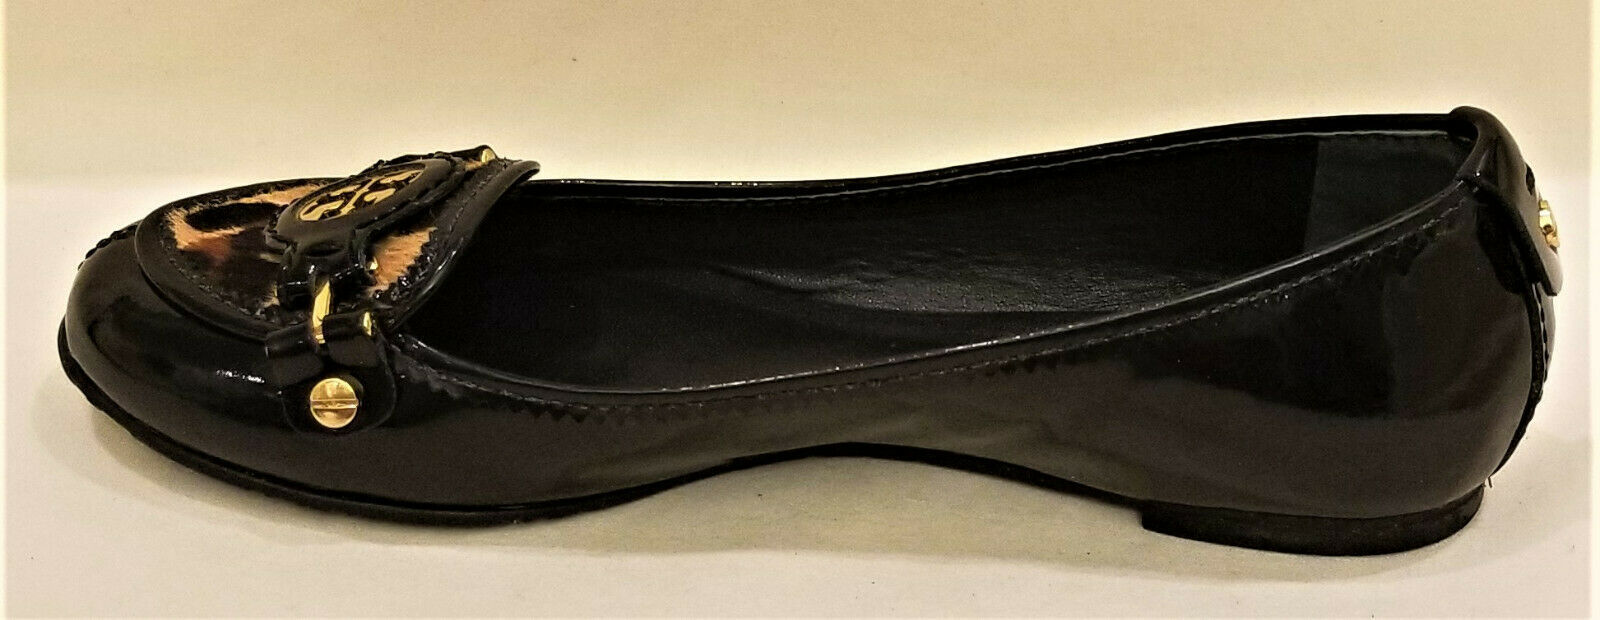 Tory Burch Comfort Flats Sz-6M Black Patent Leather Gold Metal Tory Burch Accent